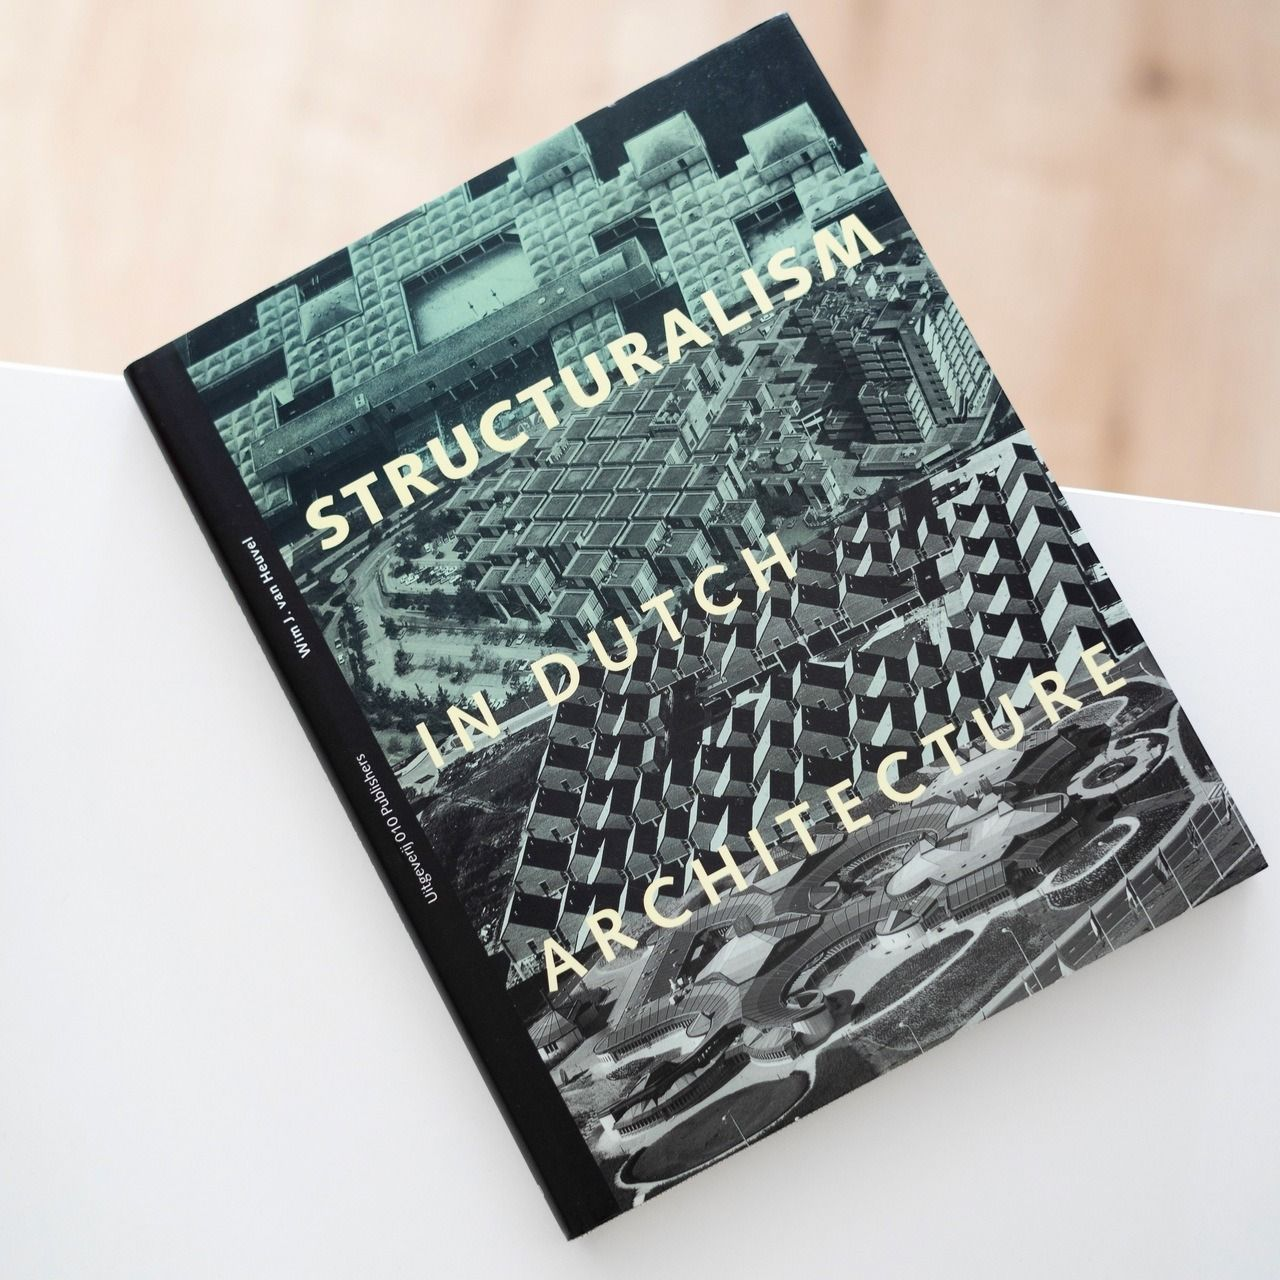 Im mildly obesessed with structuralist architecture at the moment and thus the present book was a